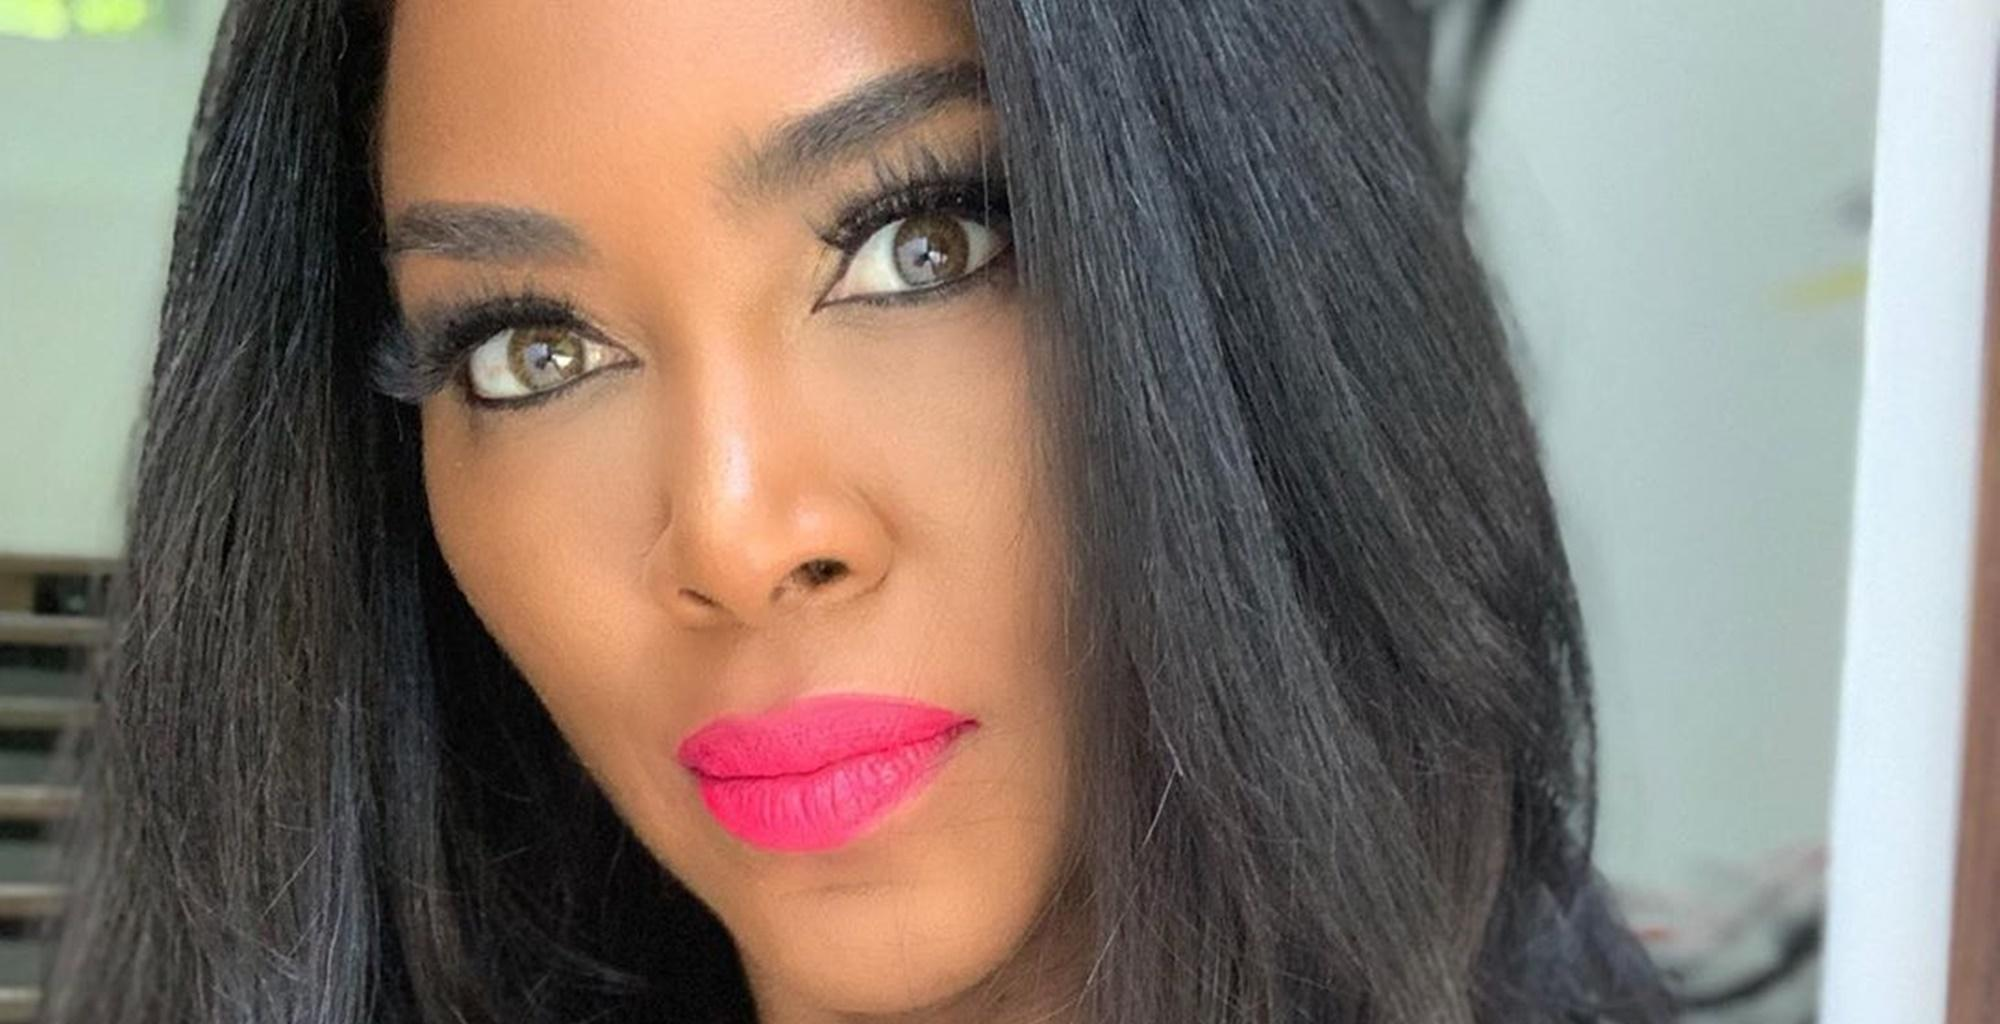 Kenya Moore's Baby Girl, Brooklyn Daly, Gives Fans Baby Fever In Video With Cynthia Bailey